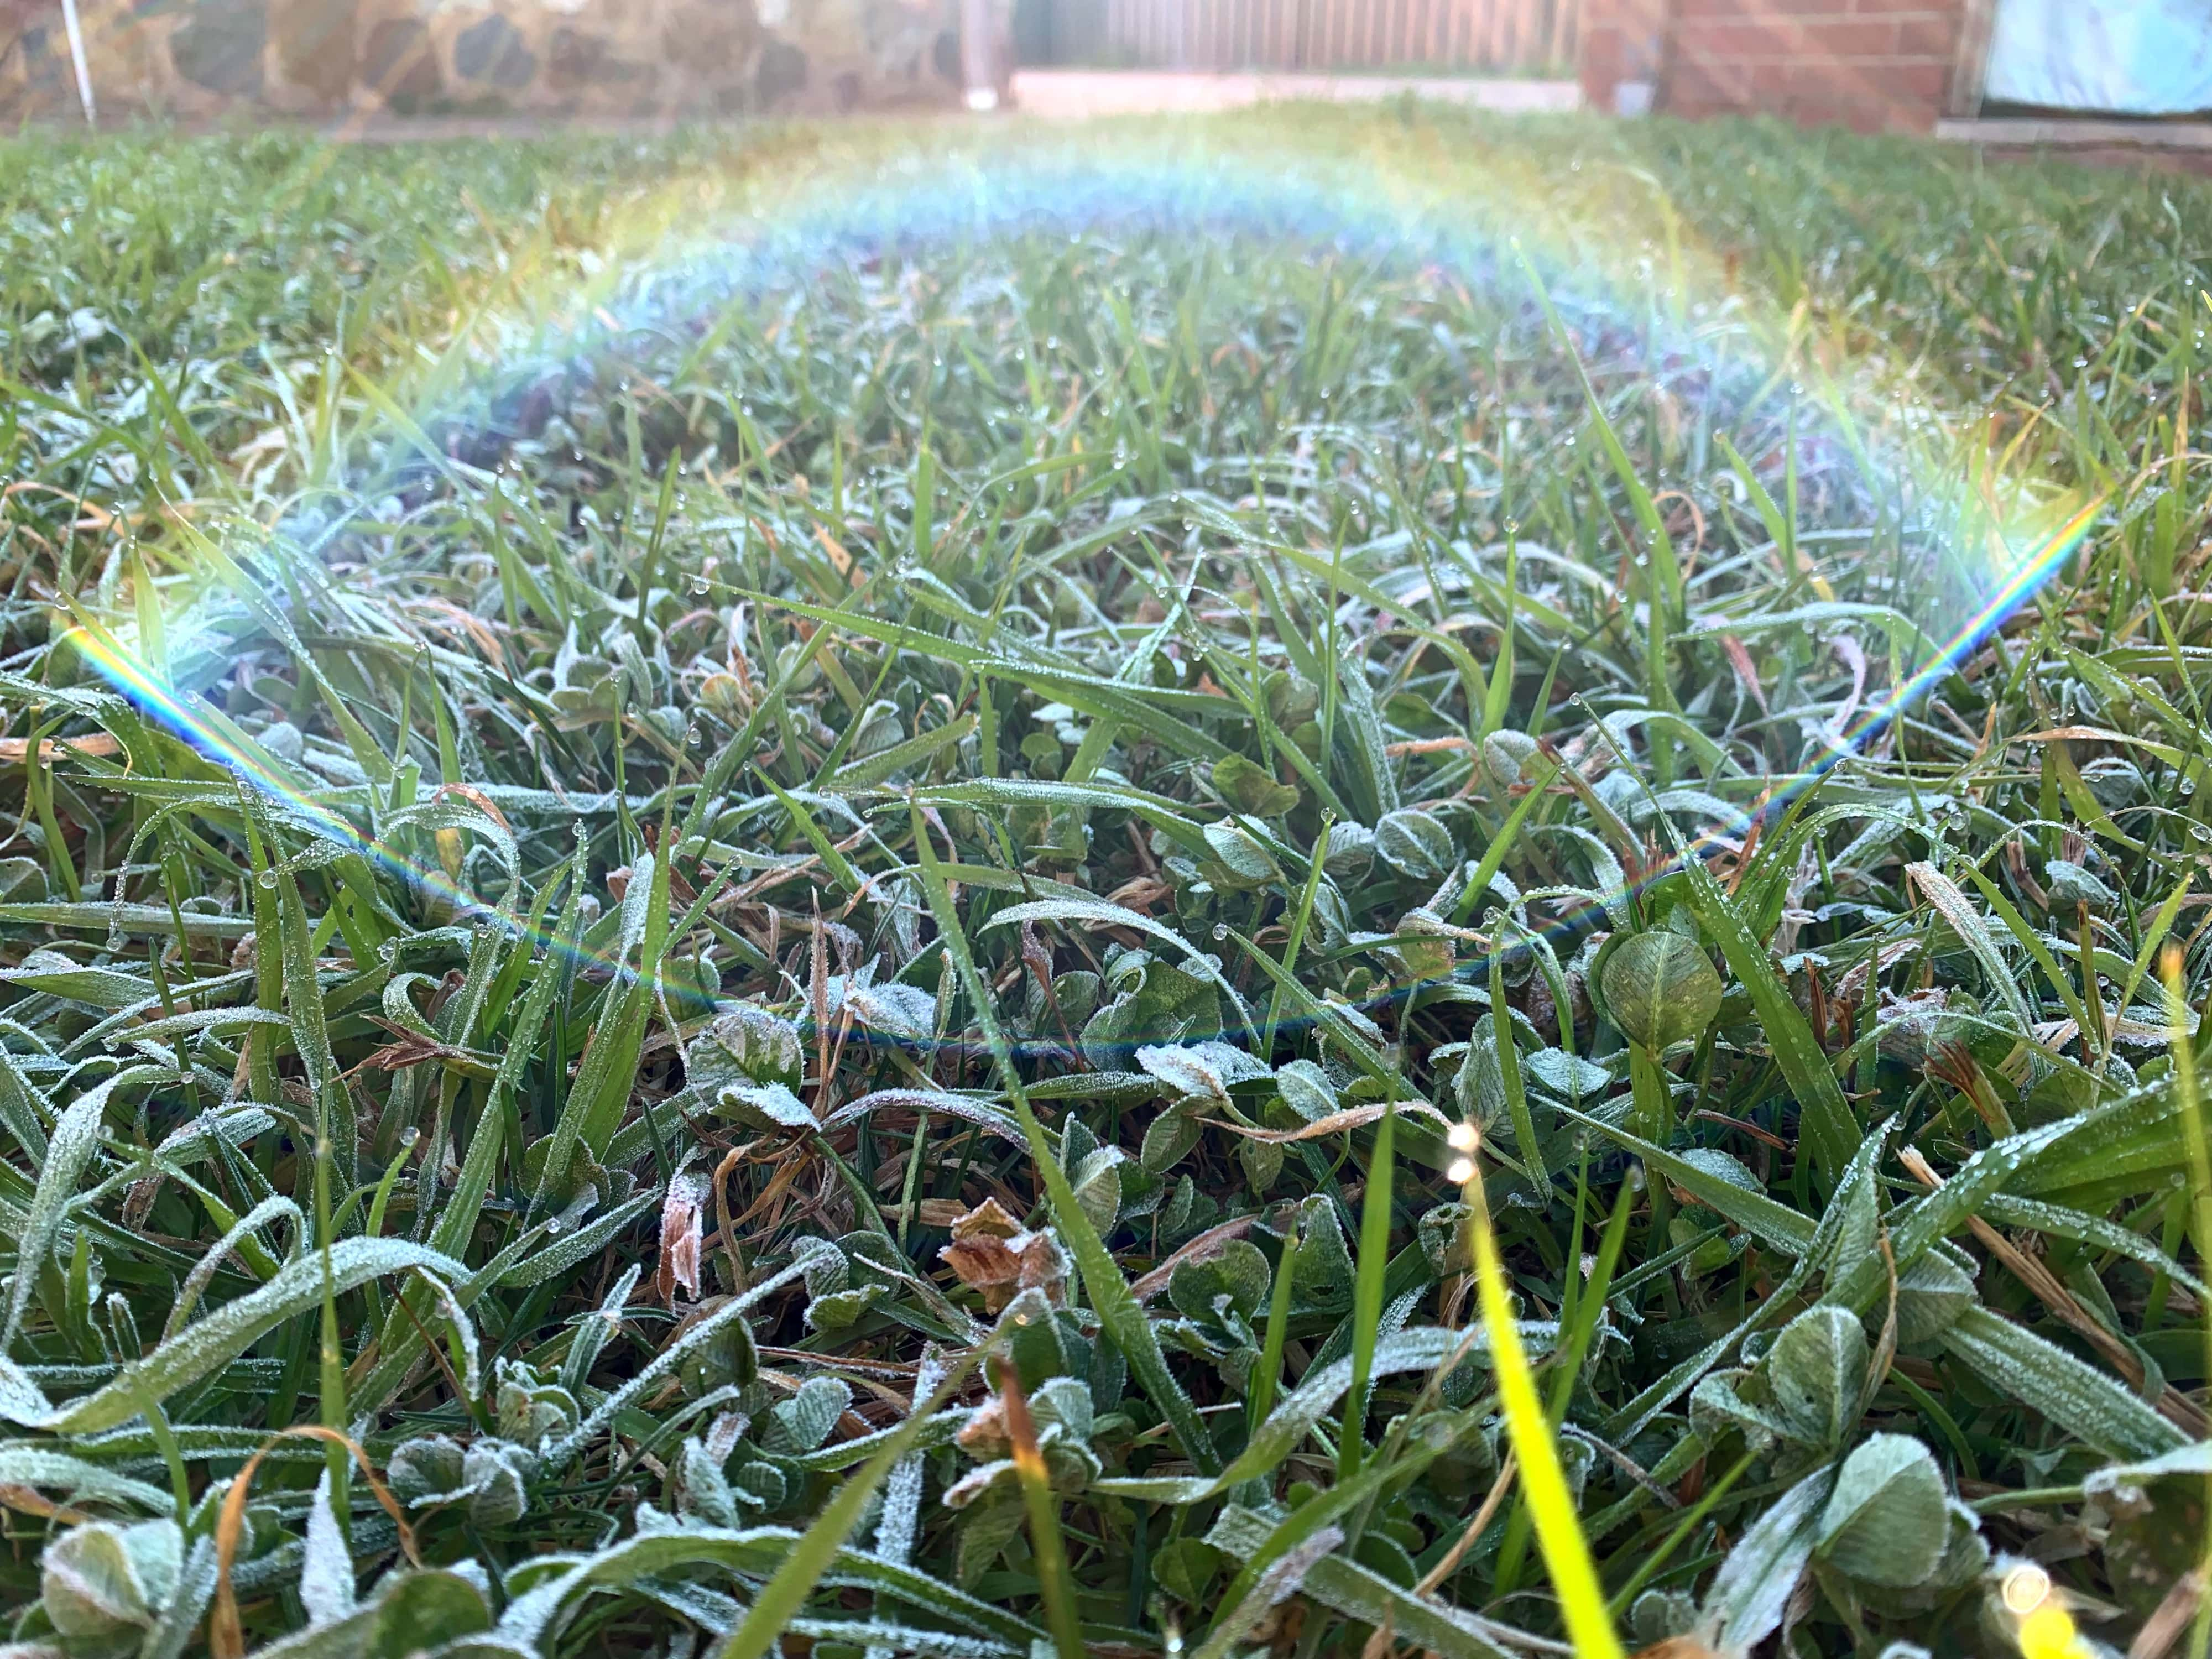 closeup photo of frost on the grass with the sunlight glinting in the camera's lens